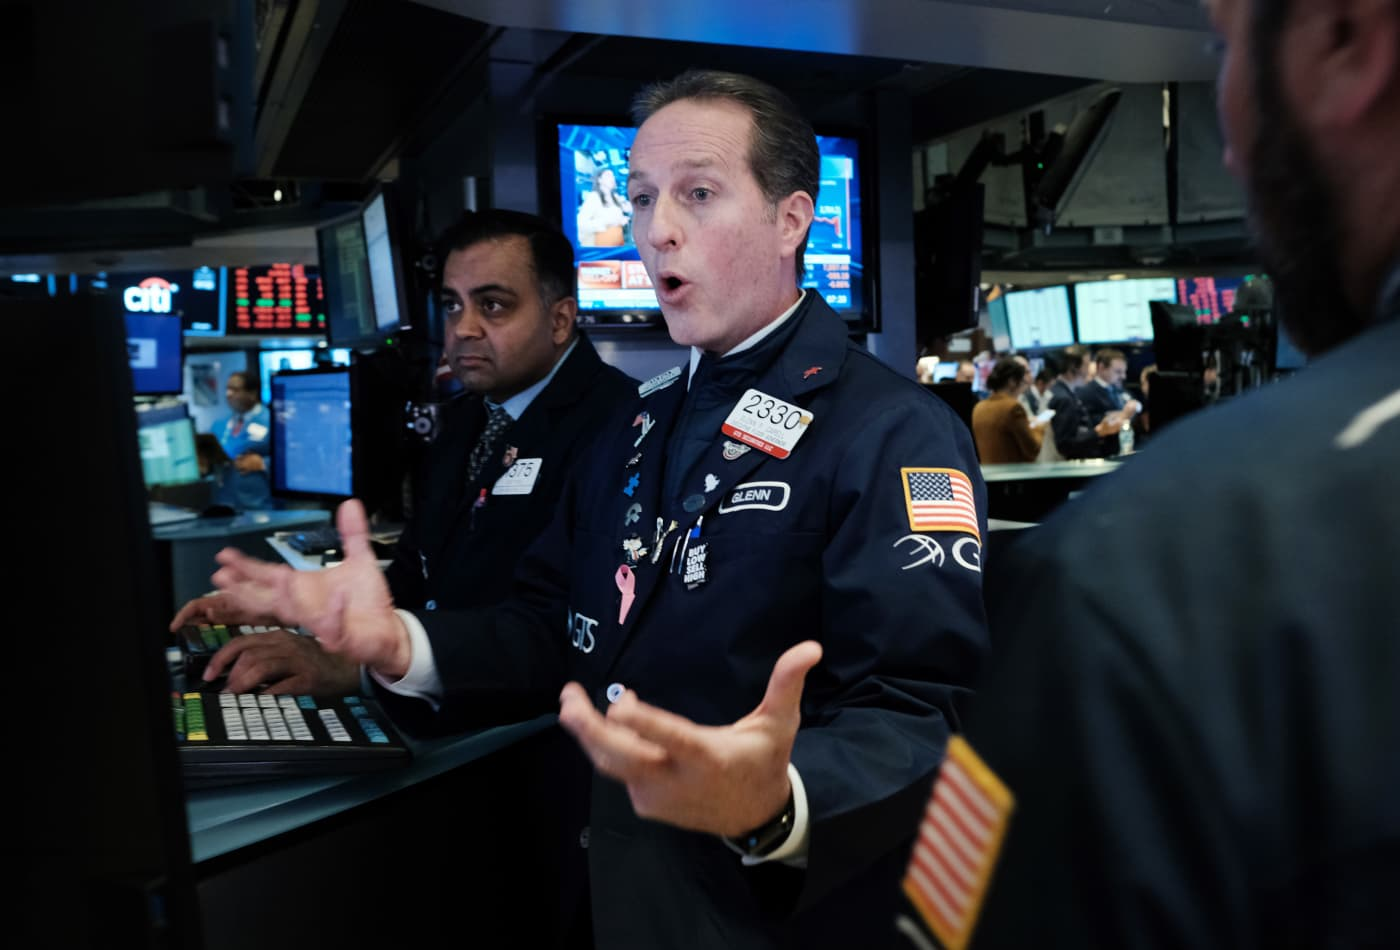 Stock market live Monday: Stocks post major losses, Dow's worst point drop ever, Oil tanks 24%